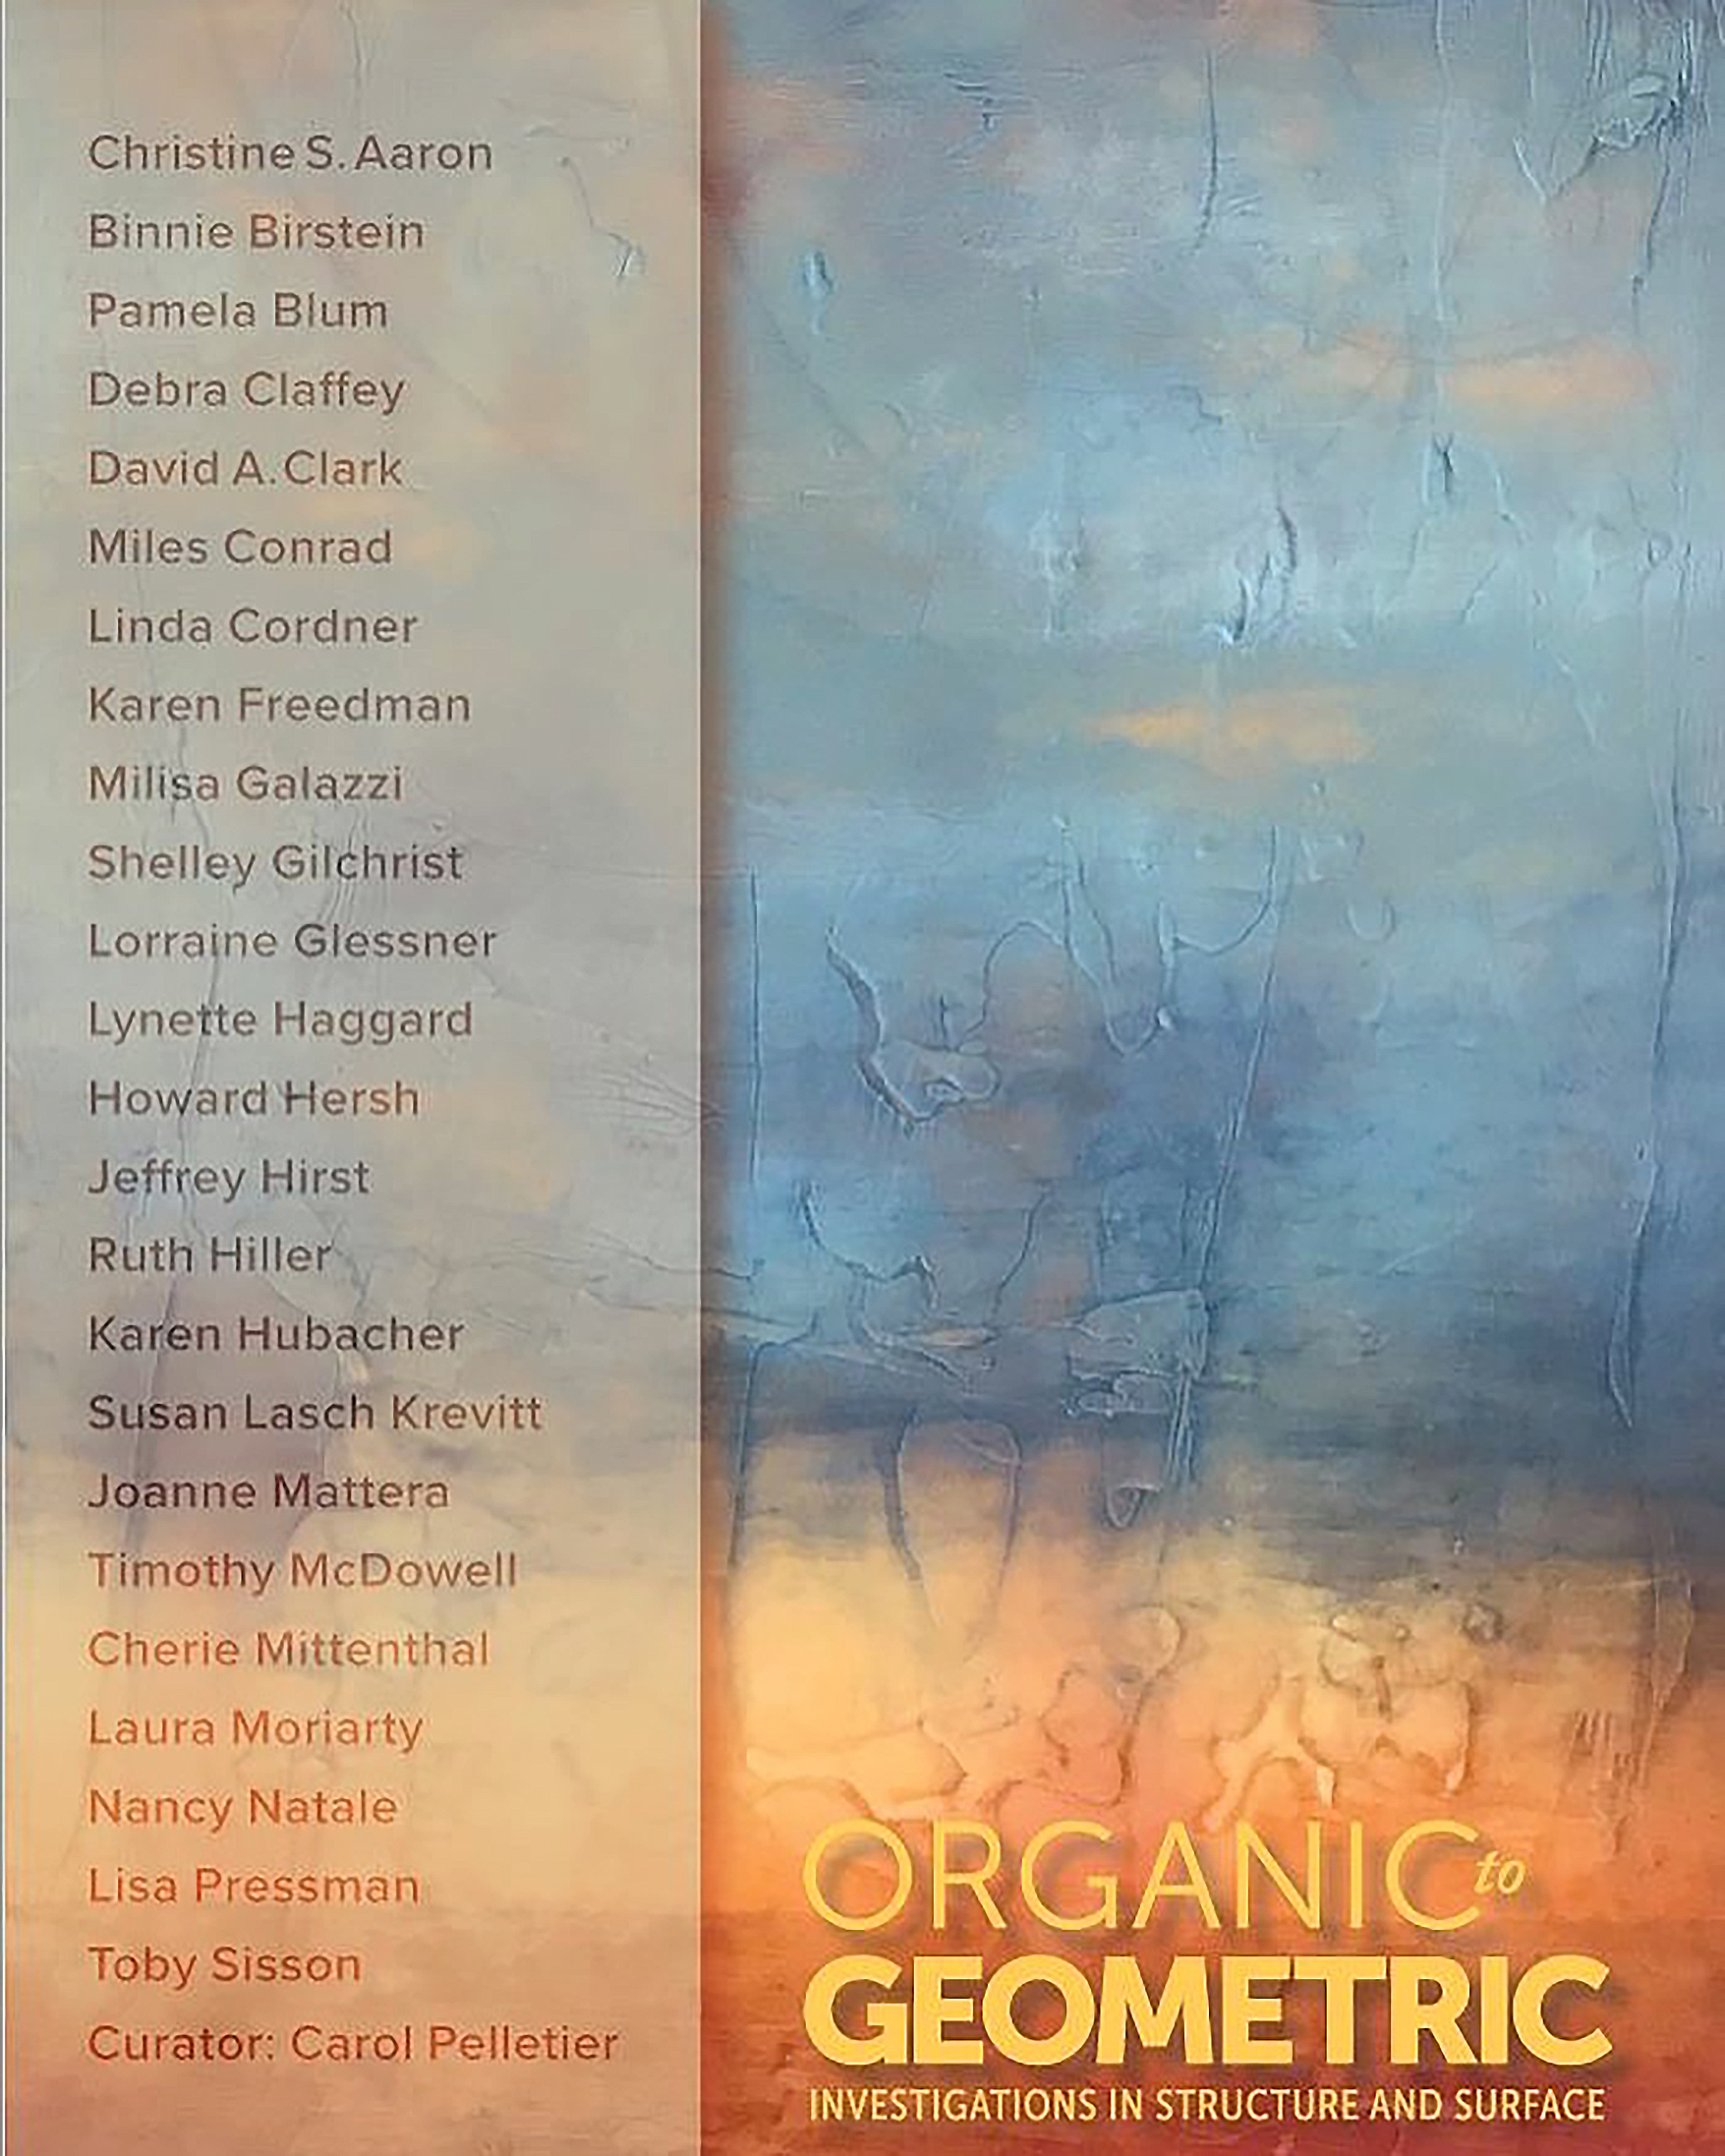 - Organic to Geometric: Investigations in Structure and Surface - Curated by Carol PelletierProvincetown Art Association and Museum May 25 - June 24, 2018, opening reception May 25 and Artist's reception June 1st at 7:00pmClick on image which will take you to the digital catalog.